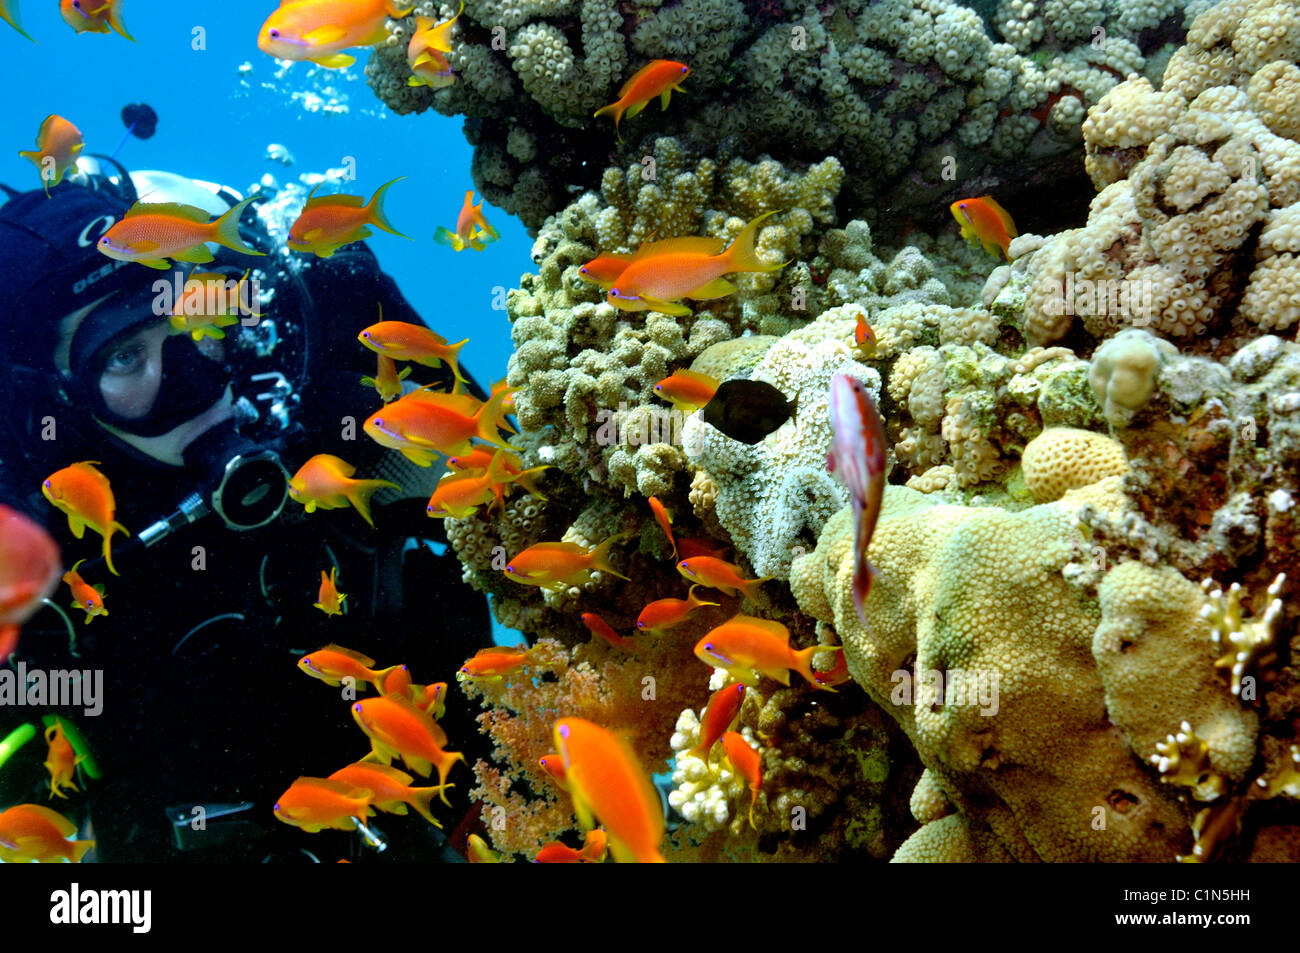 Scuba diver watching anthias fish on coral reef, Red Sea - Stock Image